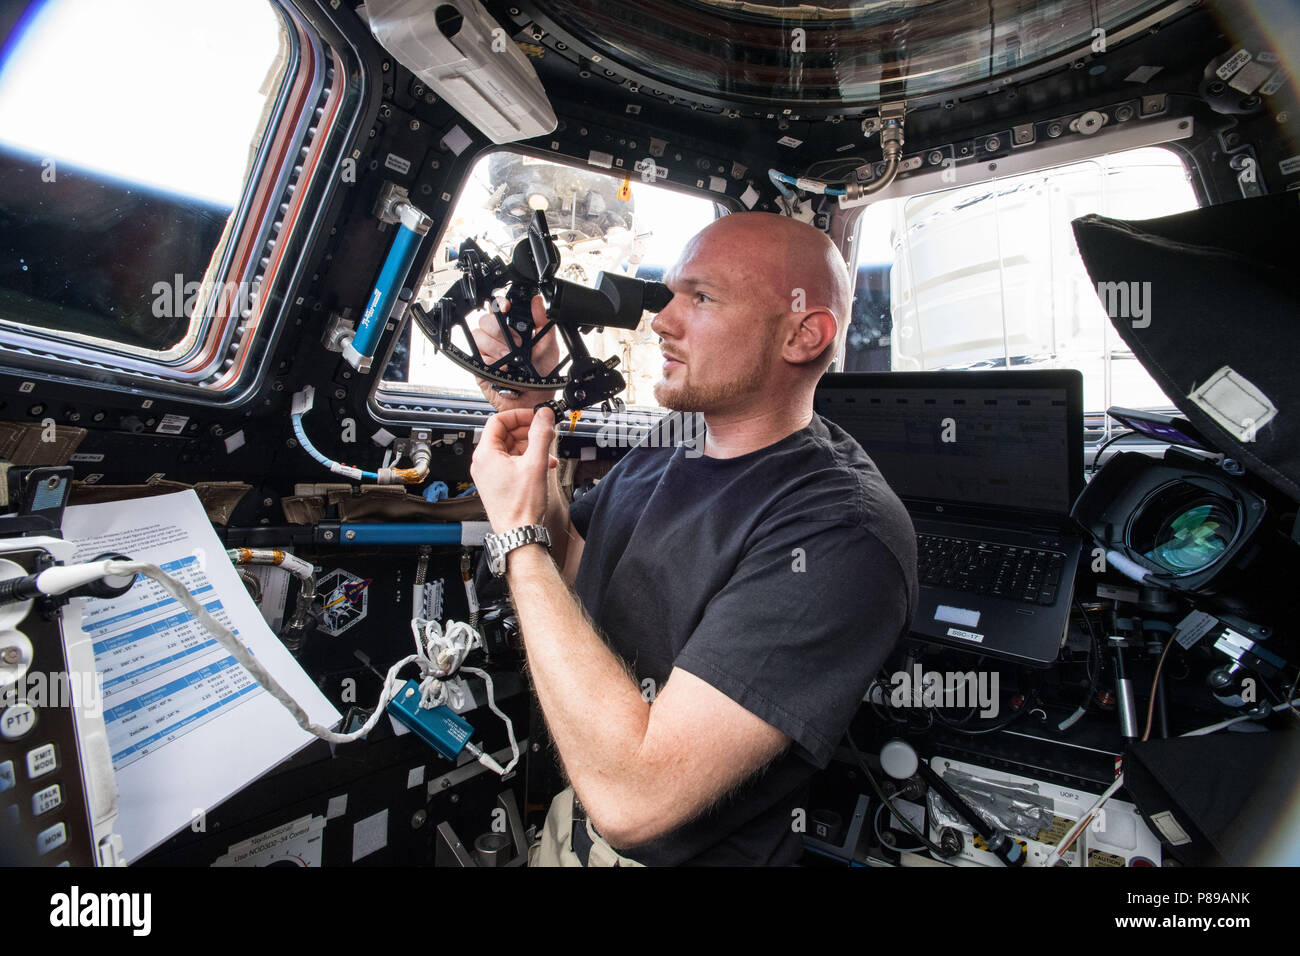 Expedition 57 crew member German astronaut Alexander Gerst of the European Space Agency calibrates and operates the Sextant Navigation device which is testing emergency navigation methods such as stability and star sighting in microgravity for future Orion exploration missions aboard the International Space Station June 28, 2018 in Earth Orbit. - Stock Image